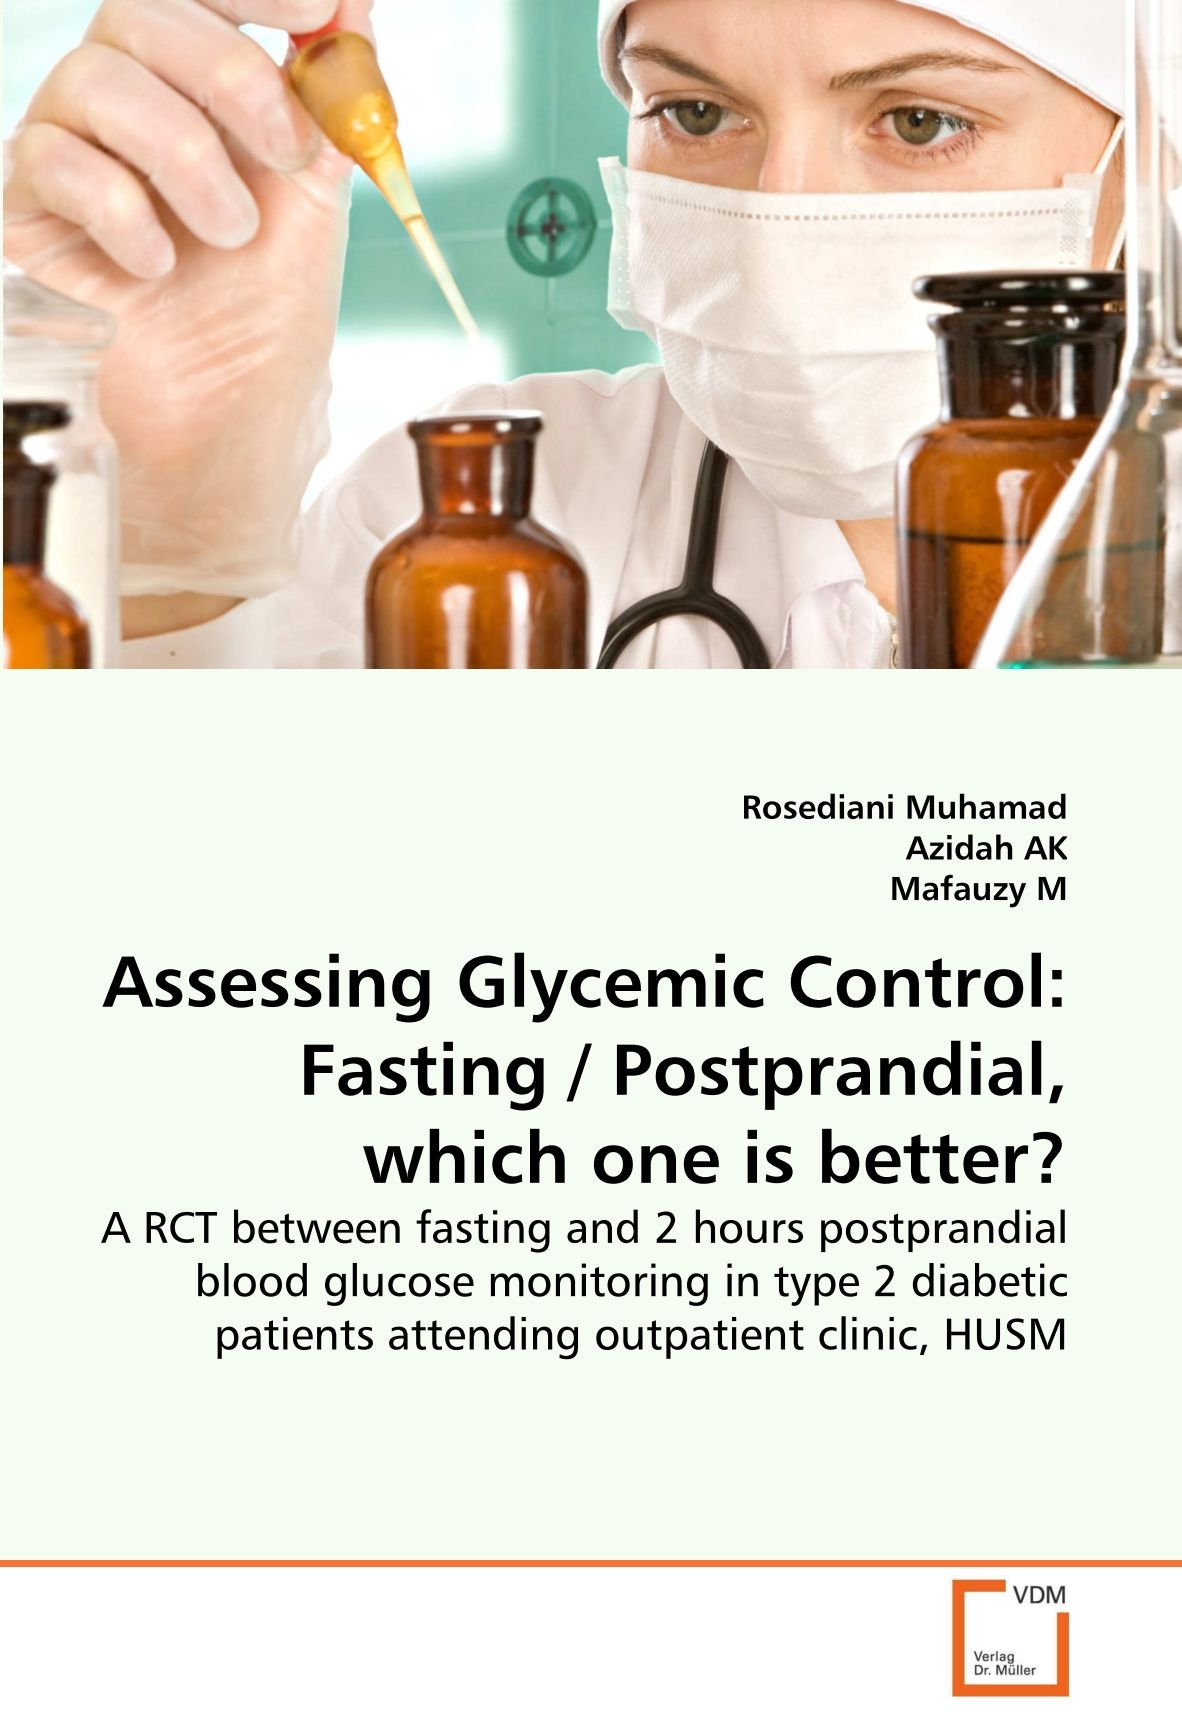 Assessing Glycemic Control Fasting Postprandial Which One Is Better A RCT Between And 2 Hours Blood Glucose Monitoring In